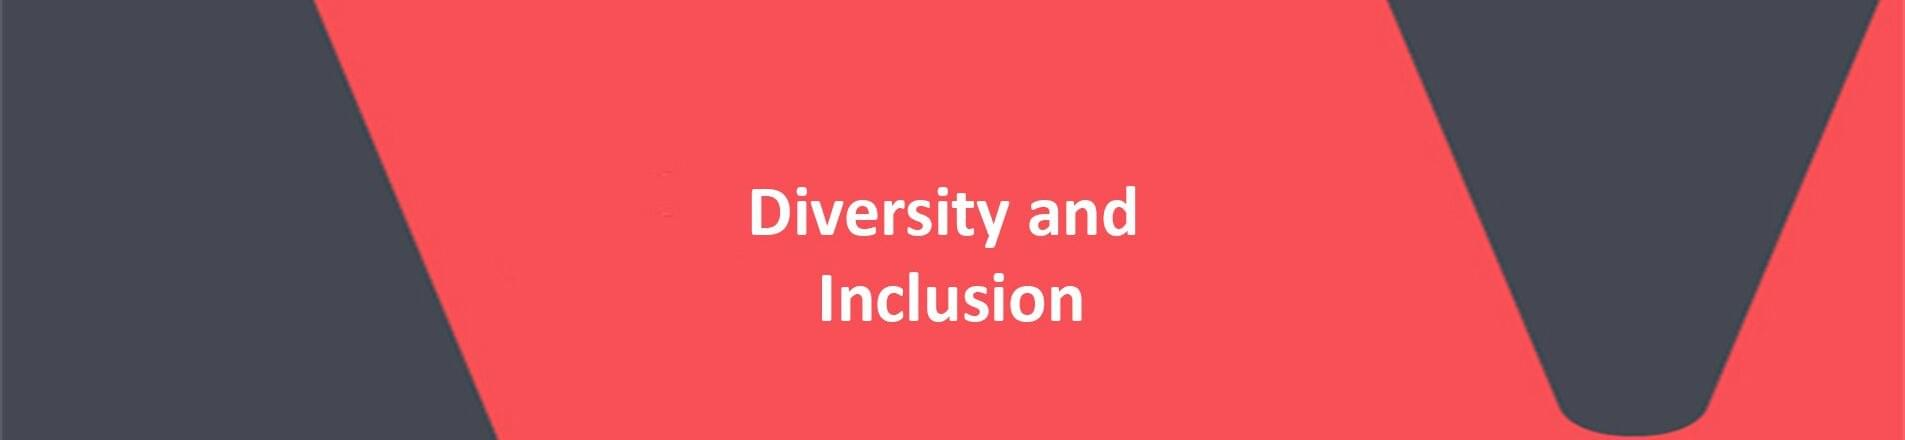 Red background with white text over top spelling Diversity and Inclusion